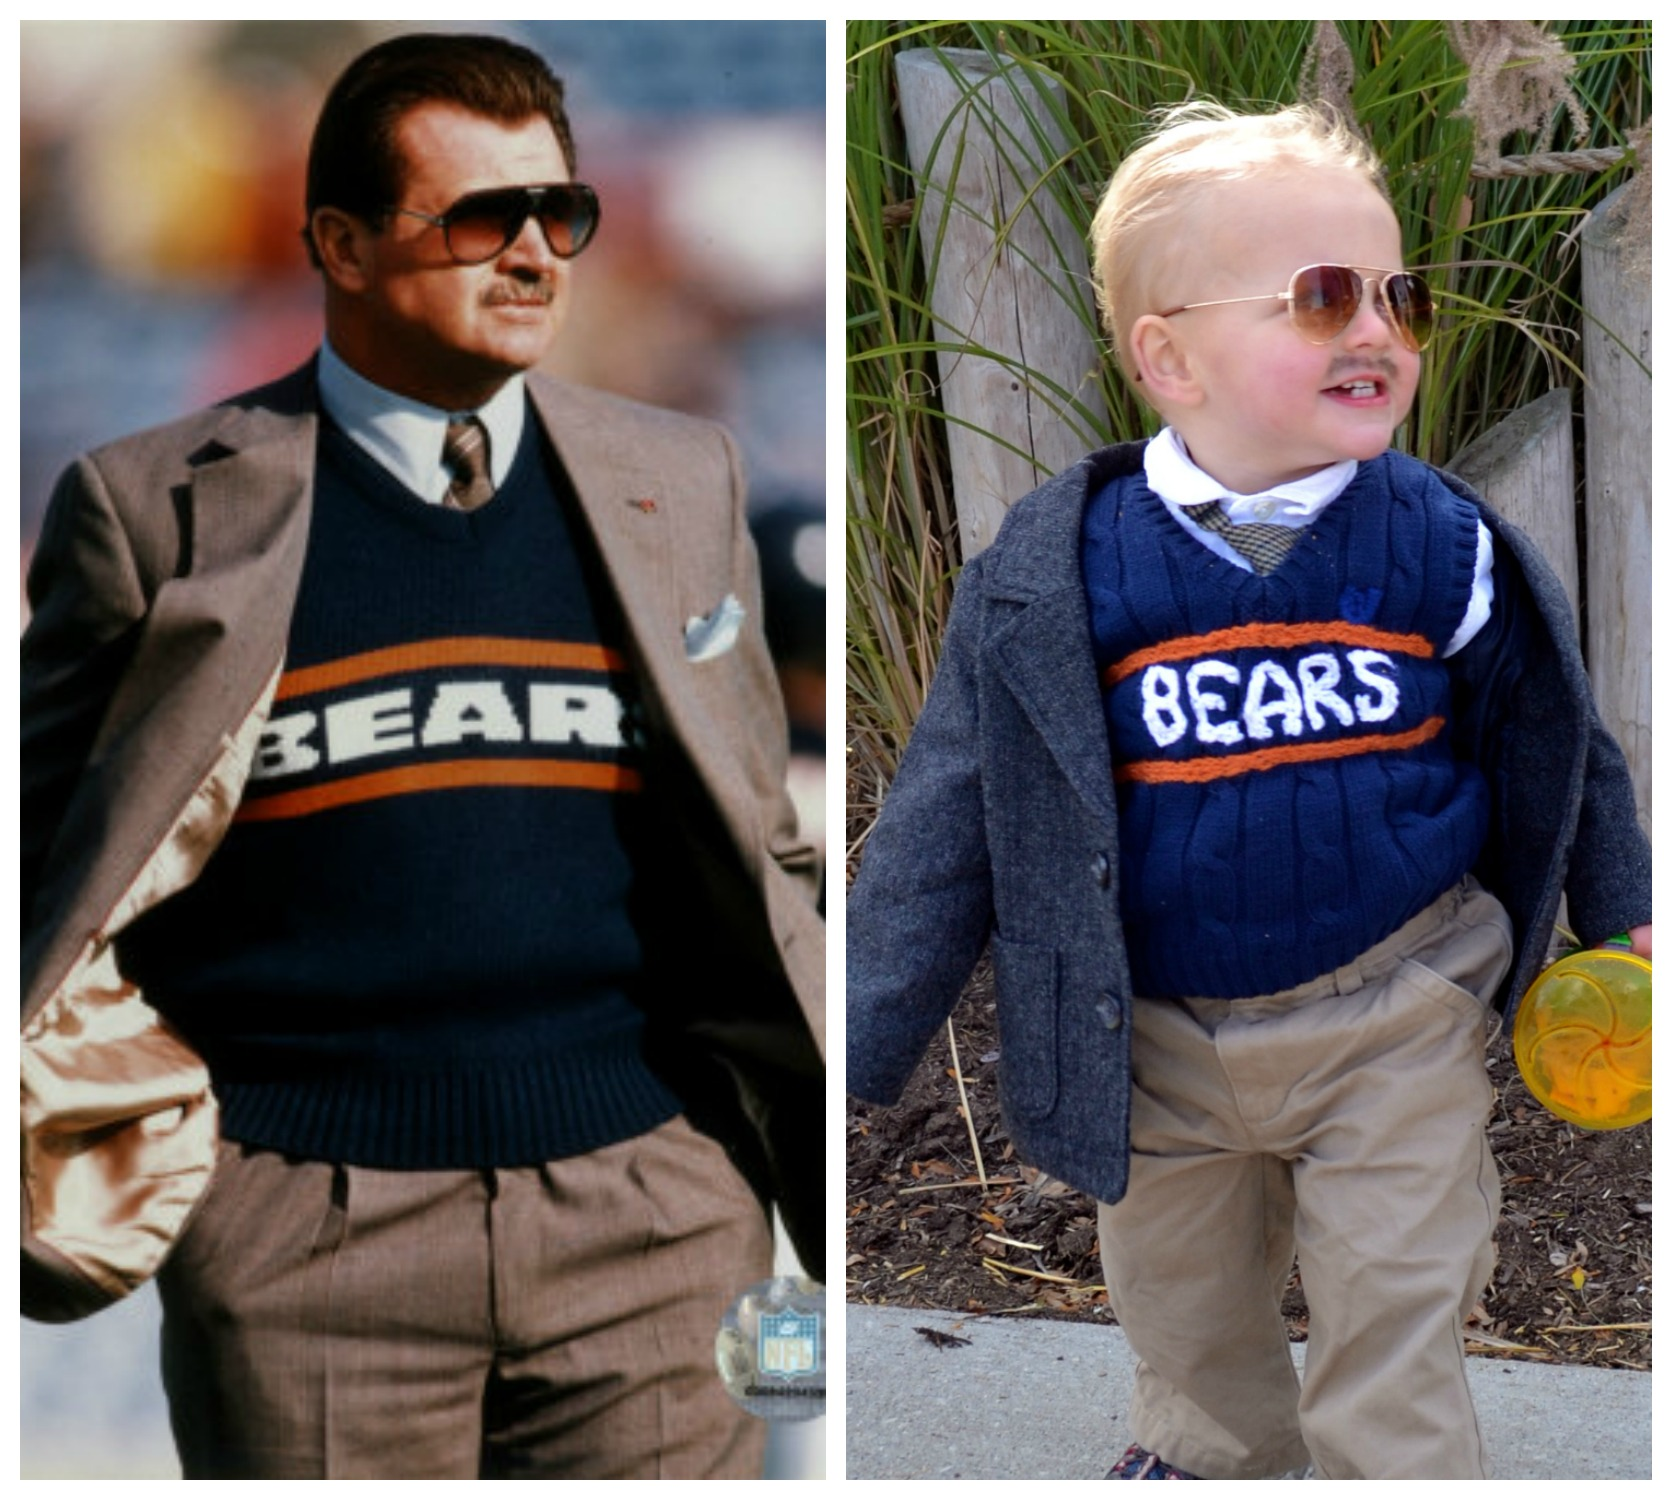 Ditka Collage